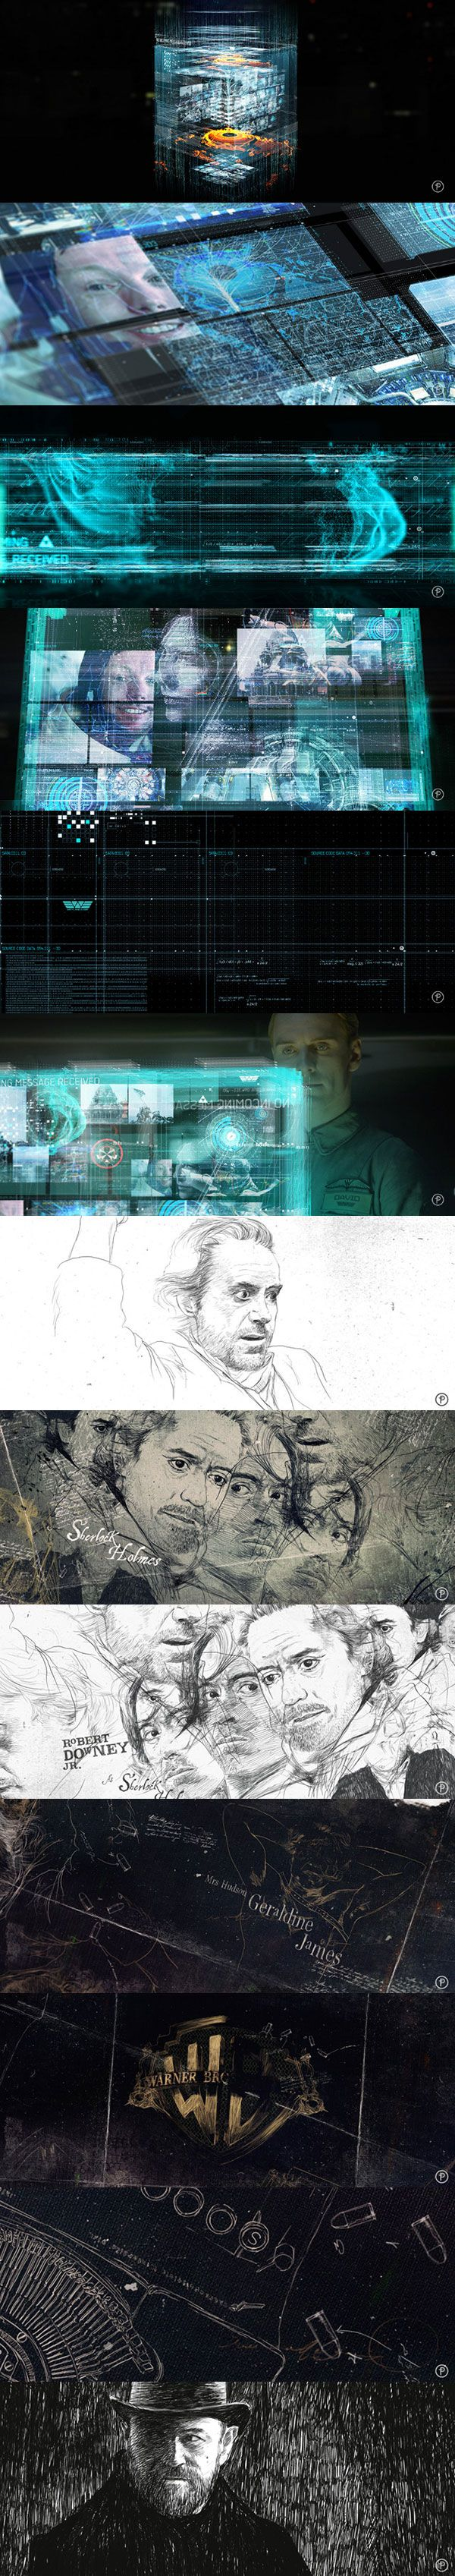 Ash Thorp Ui for the movie Promotheus and Sherlock Holmes credits.